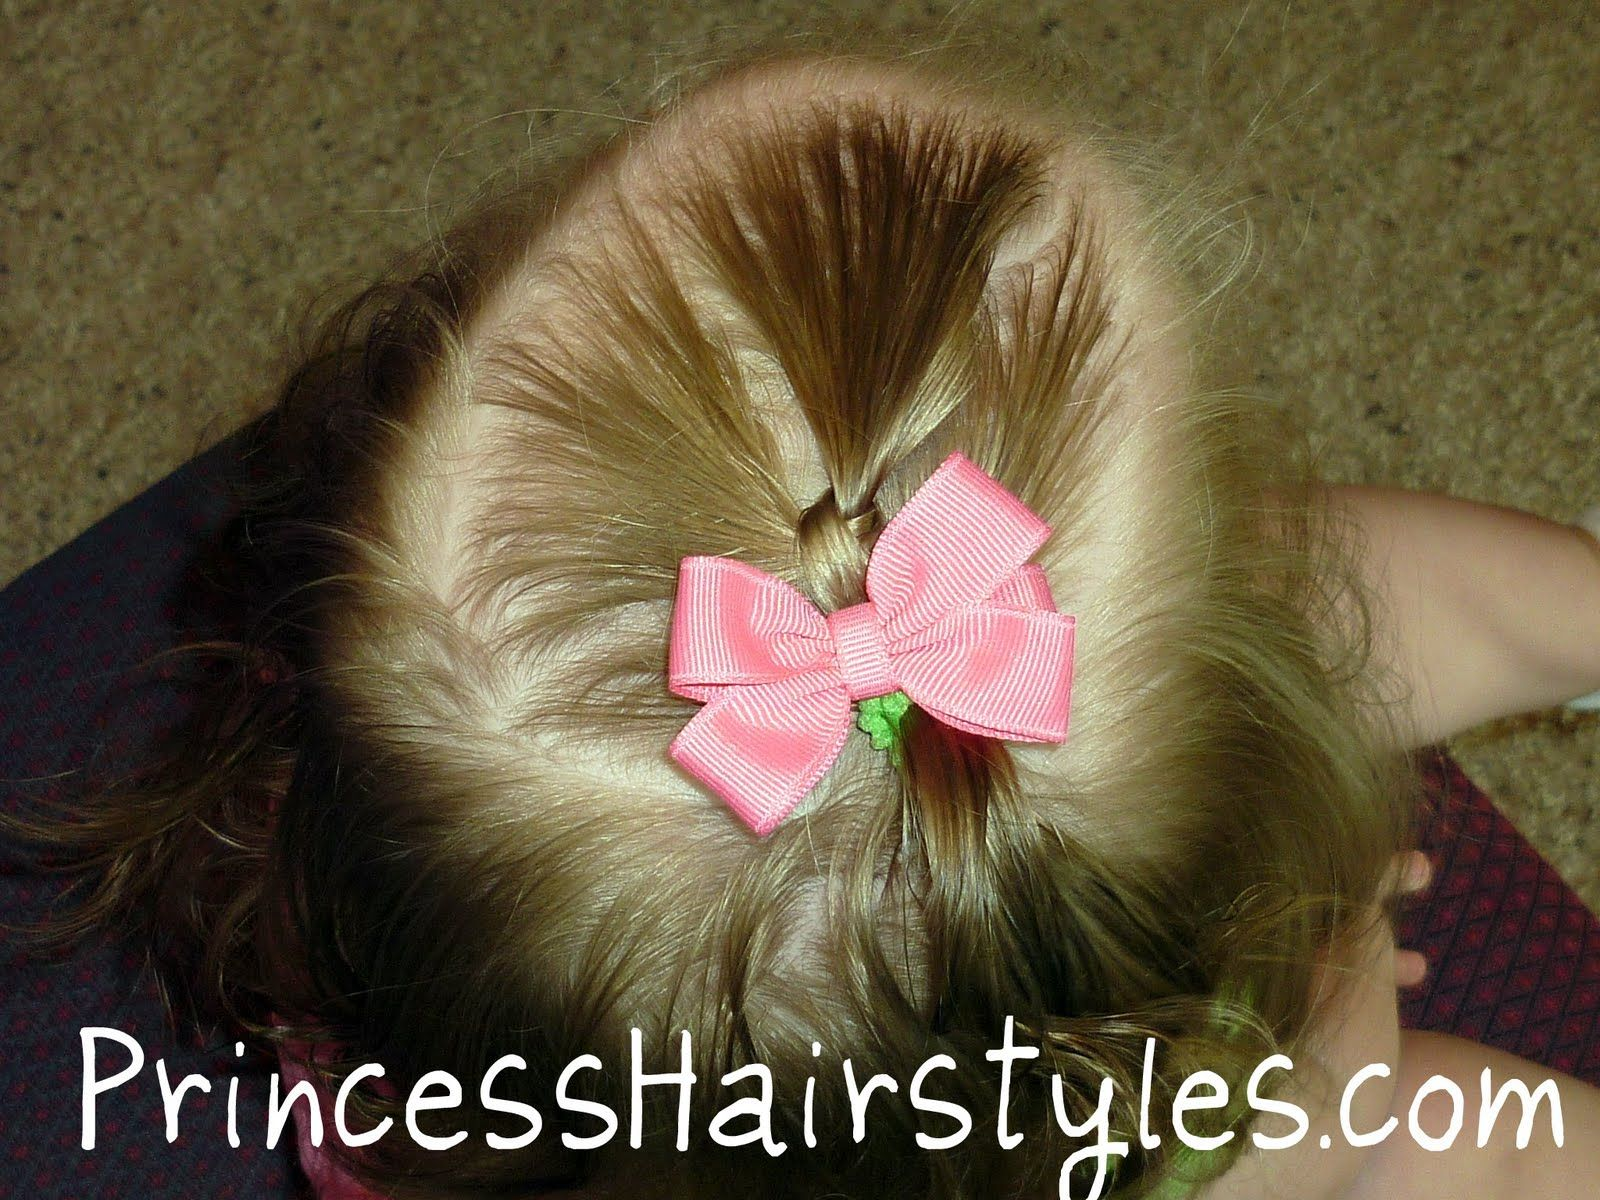 Hairstyles For Toddlers Hairstyle For Toddlersi So Want To Try Some Of These  The Trick